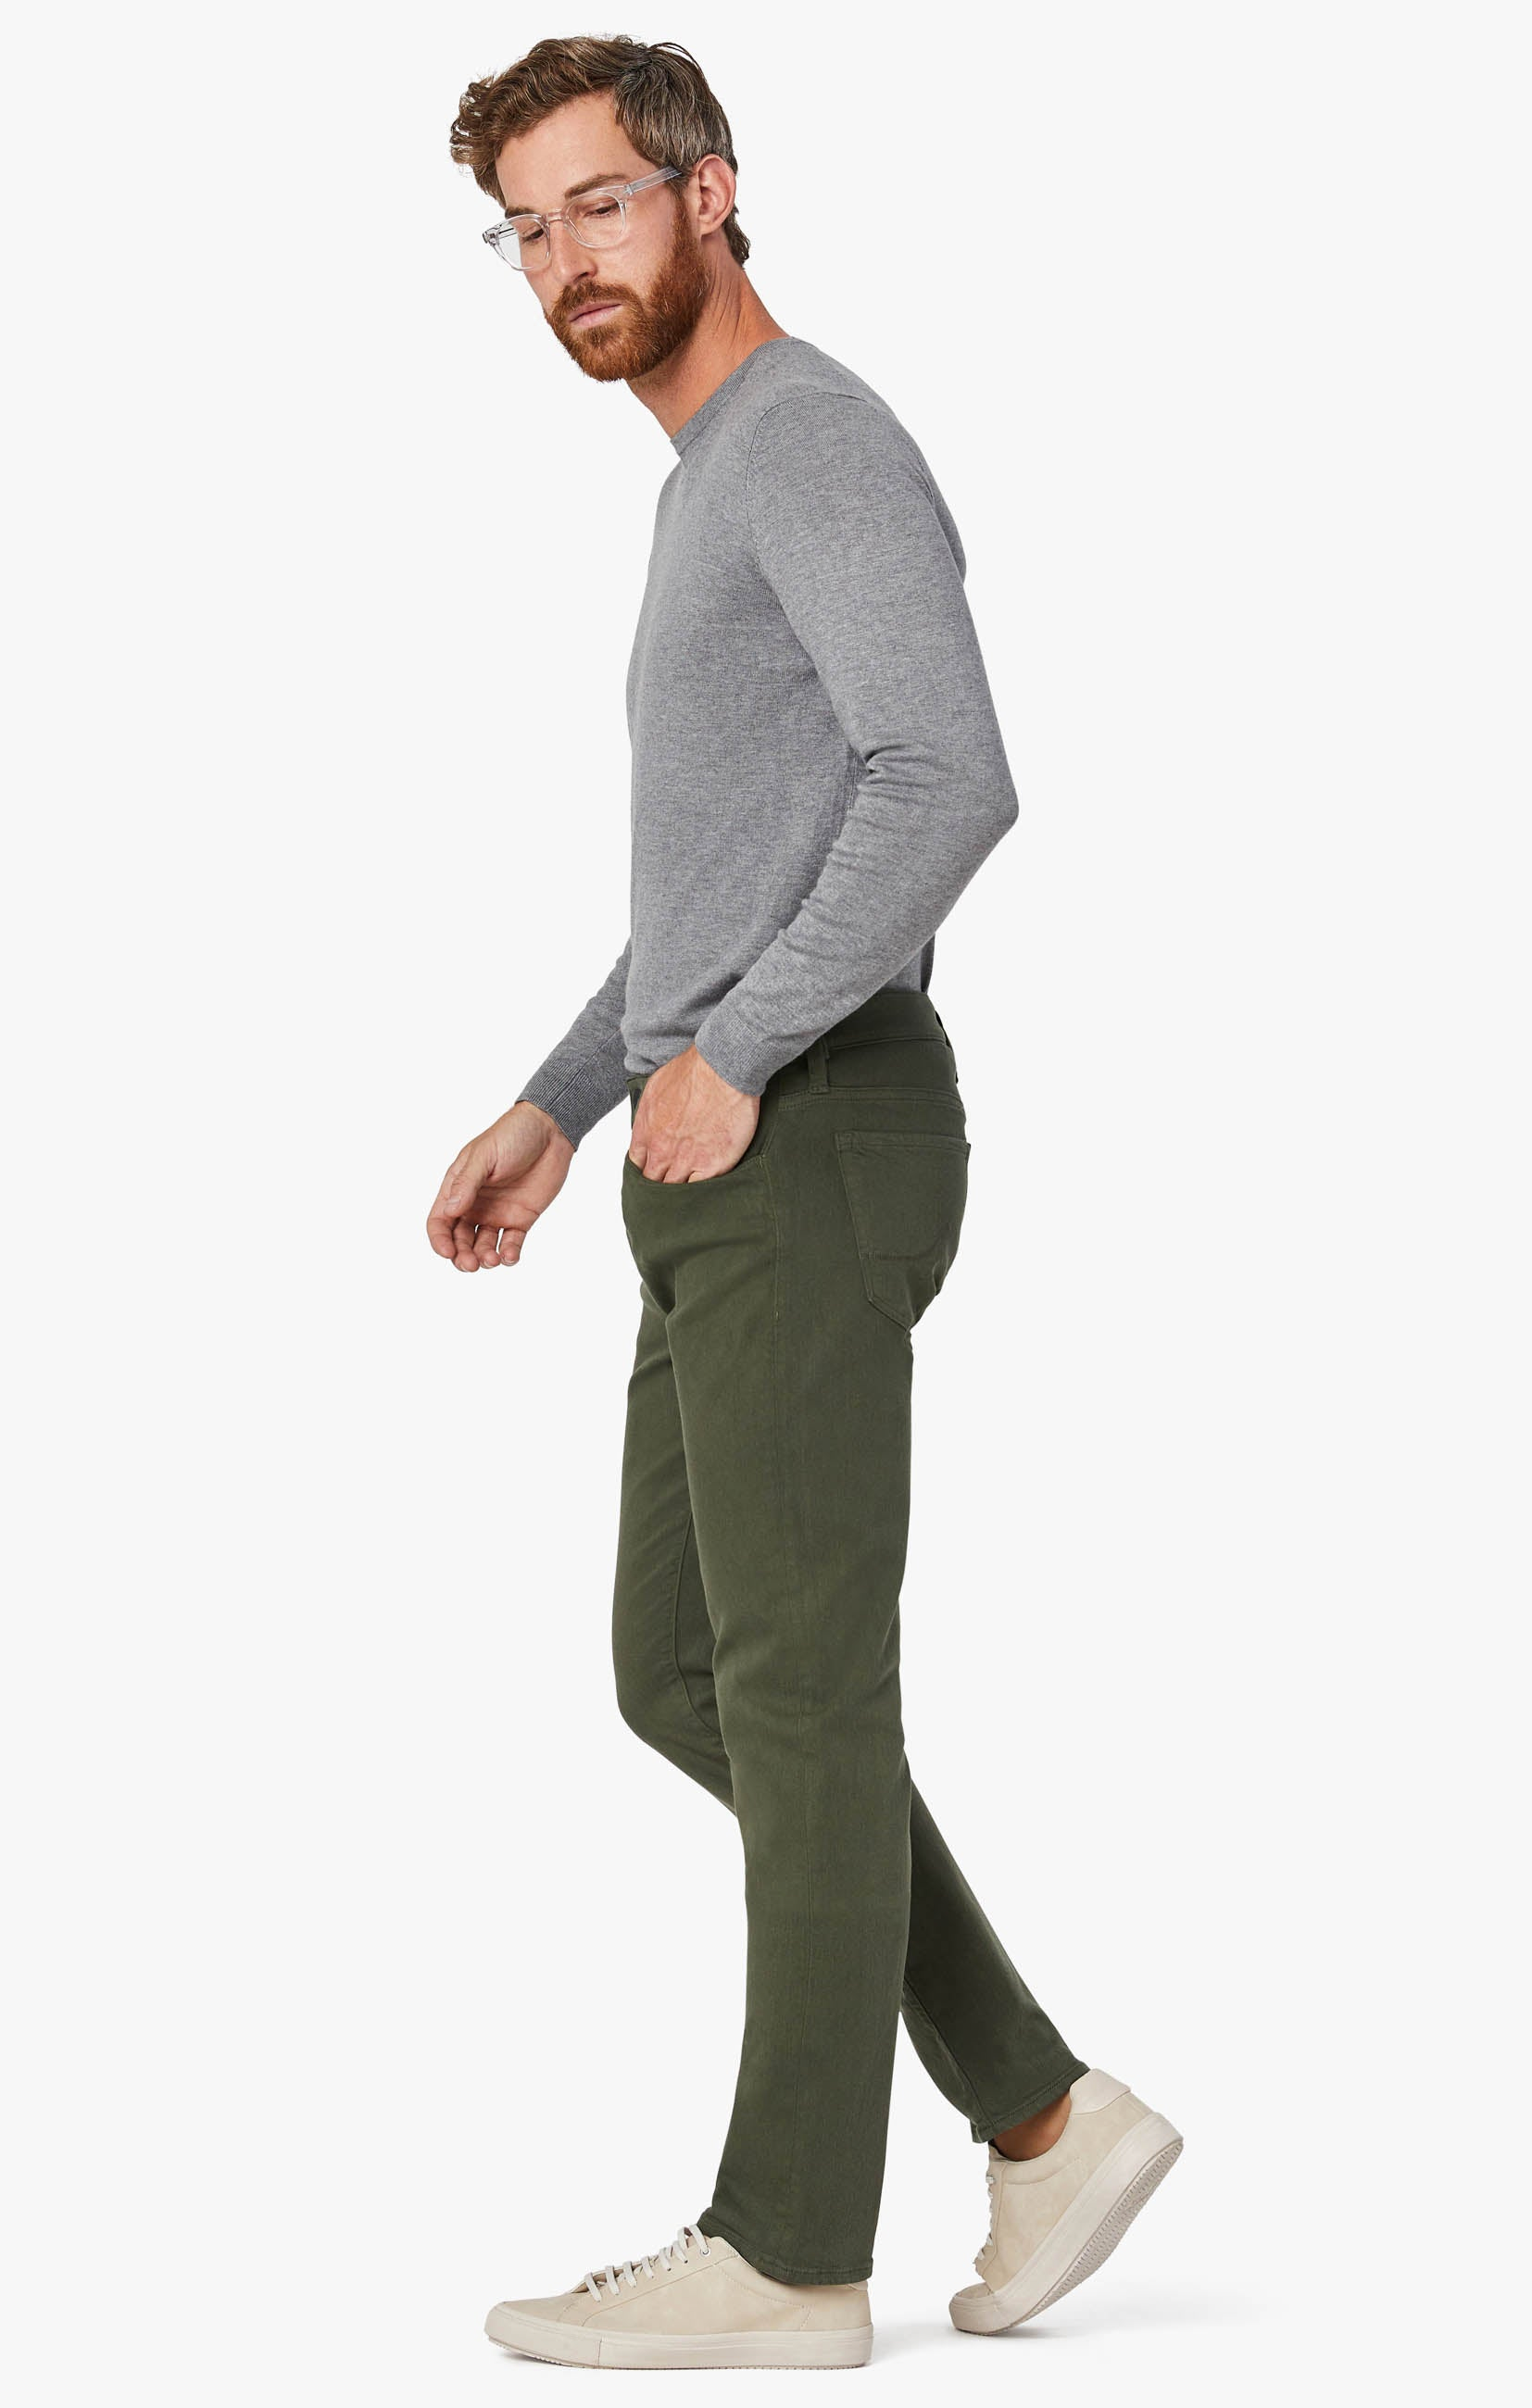 Courage Straight Leg Pants In Military Green Comfort Image 9